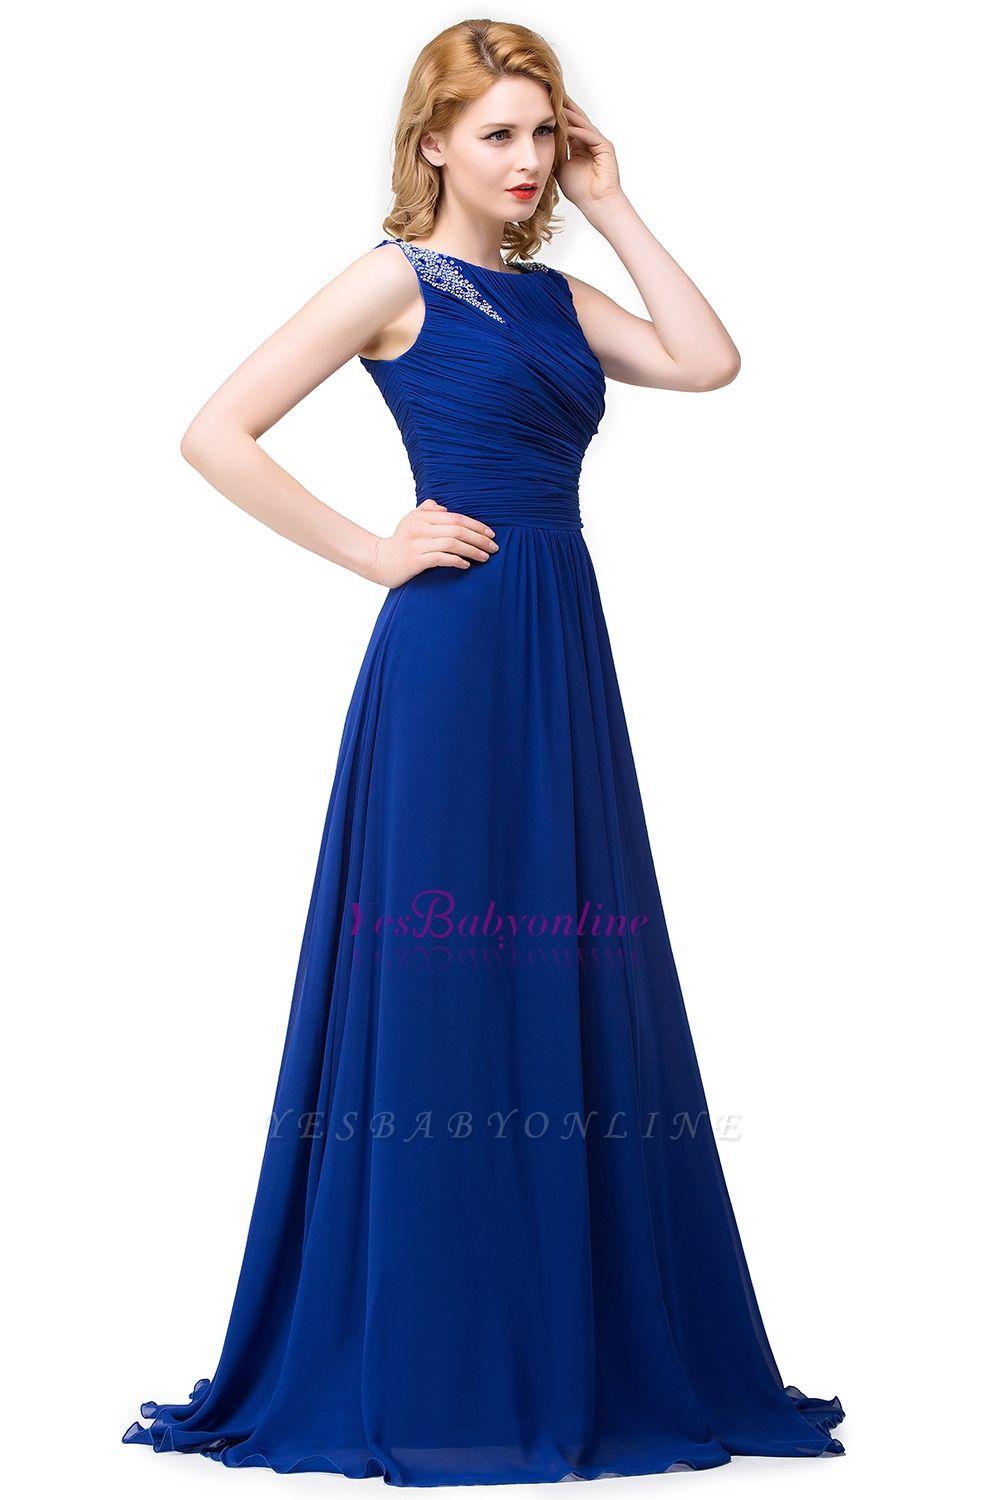 Scoop-neck Sleeveless Ruffled with Royal-blue  Long Beads Prom Dress